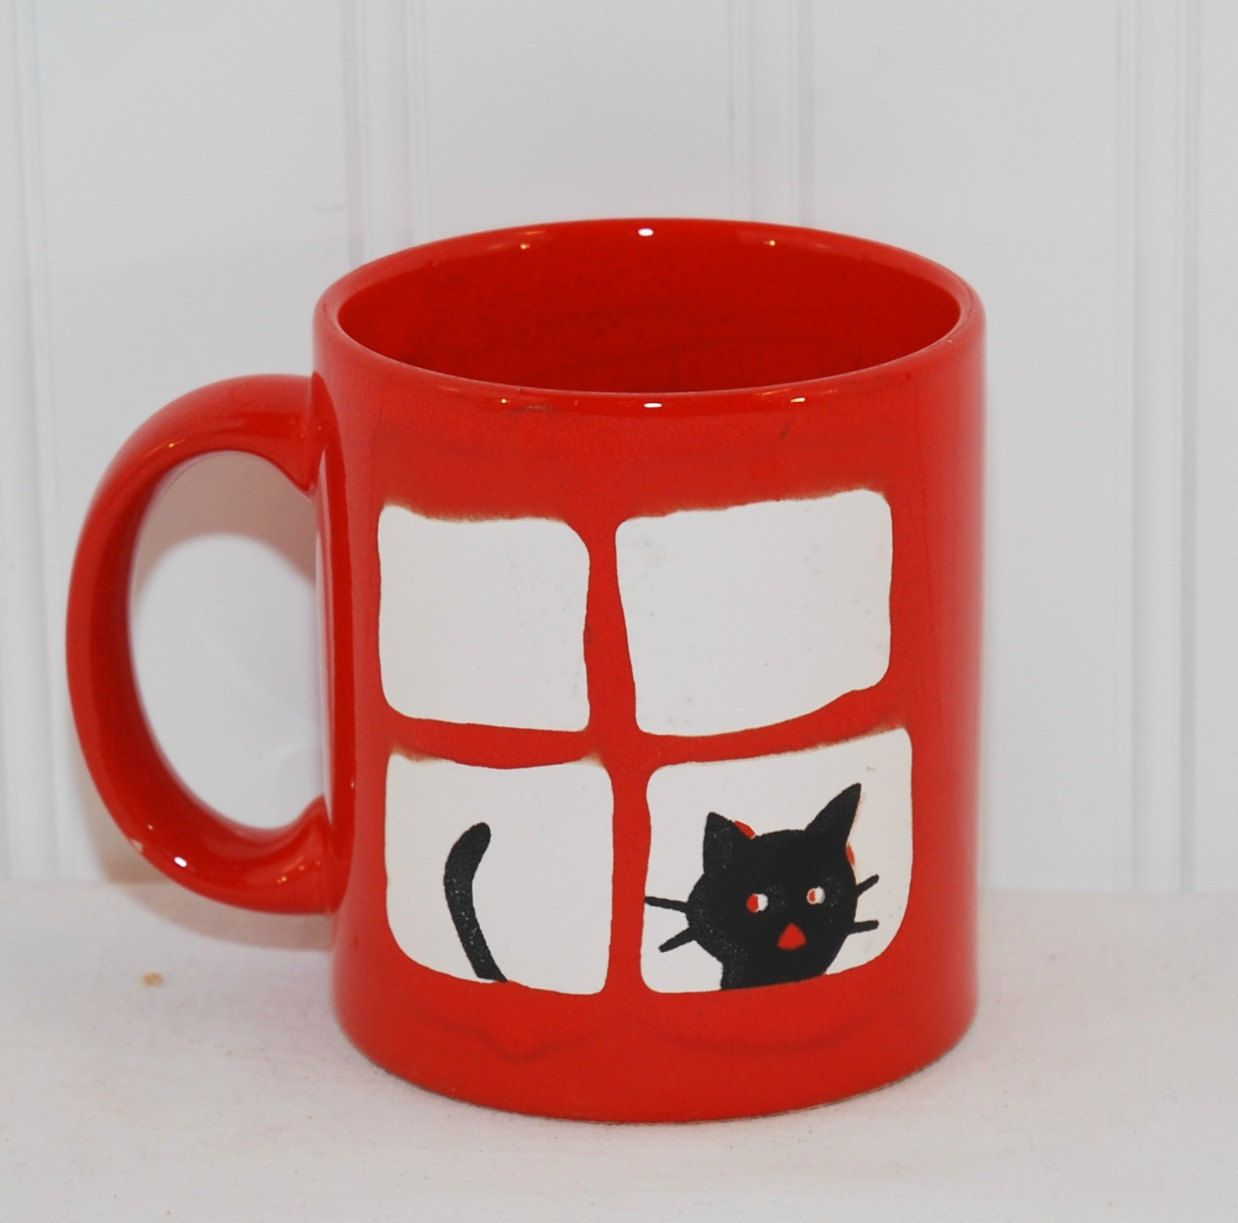 Vintage Waechtersbach Germany Red Coffee Mug With Black Cat Etsy Mugs Cat Mug Black Cats Rock